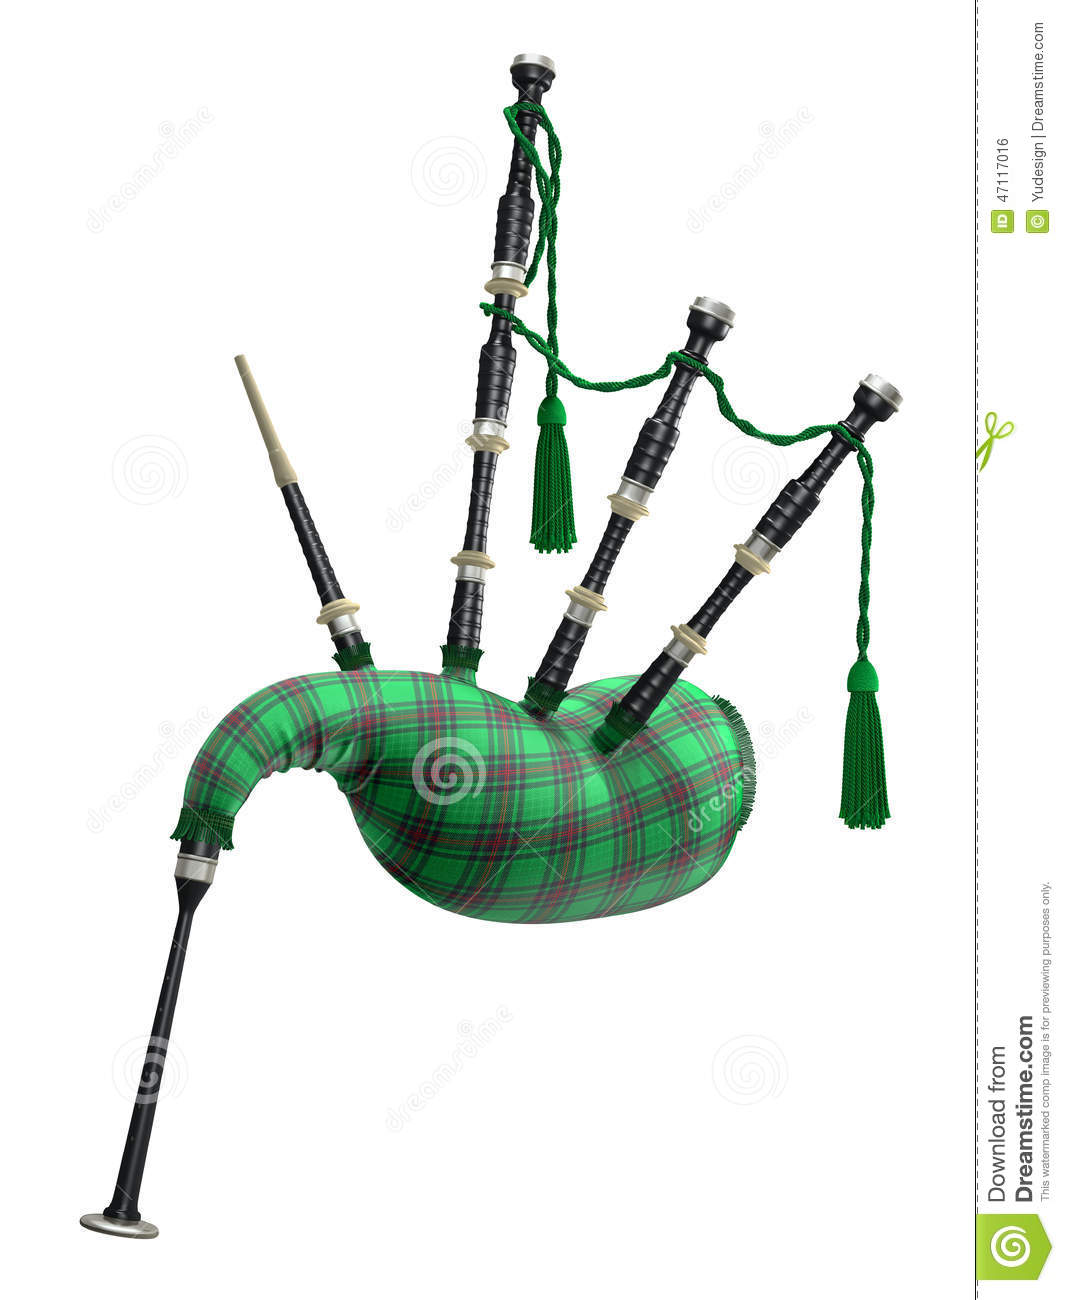 Green bagpipe isolated on white background - 3D illustration.